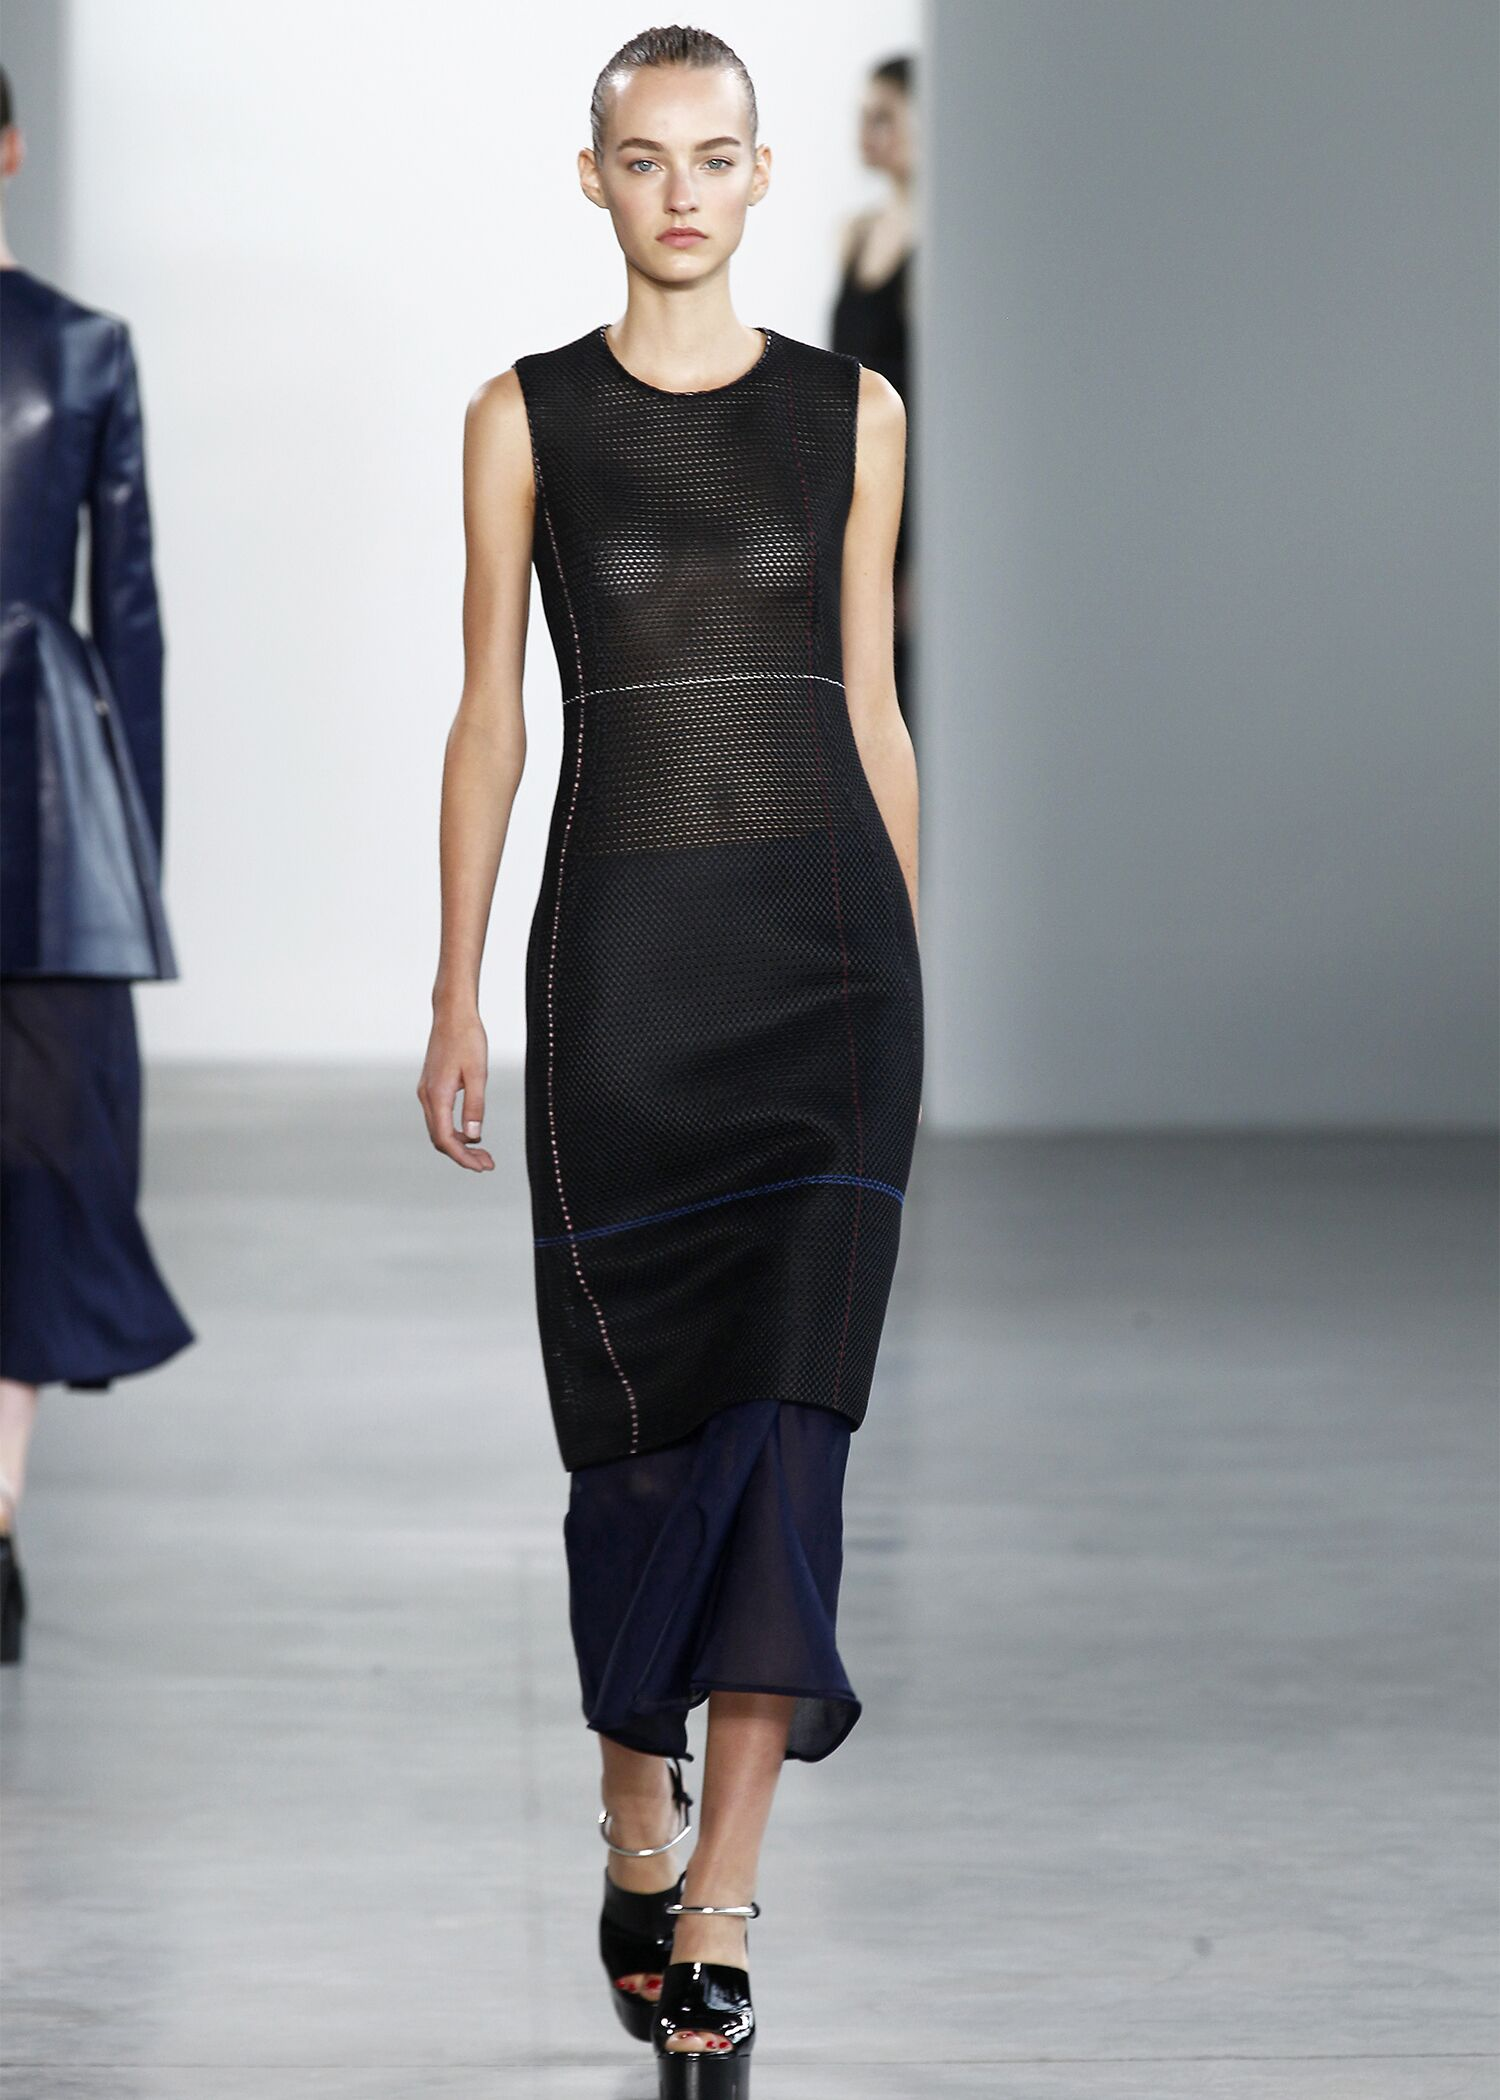 Calvin Klein Collection Spring 2015 Womenswear New York Fashion Week